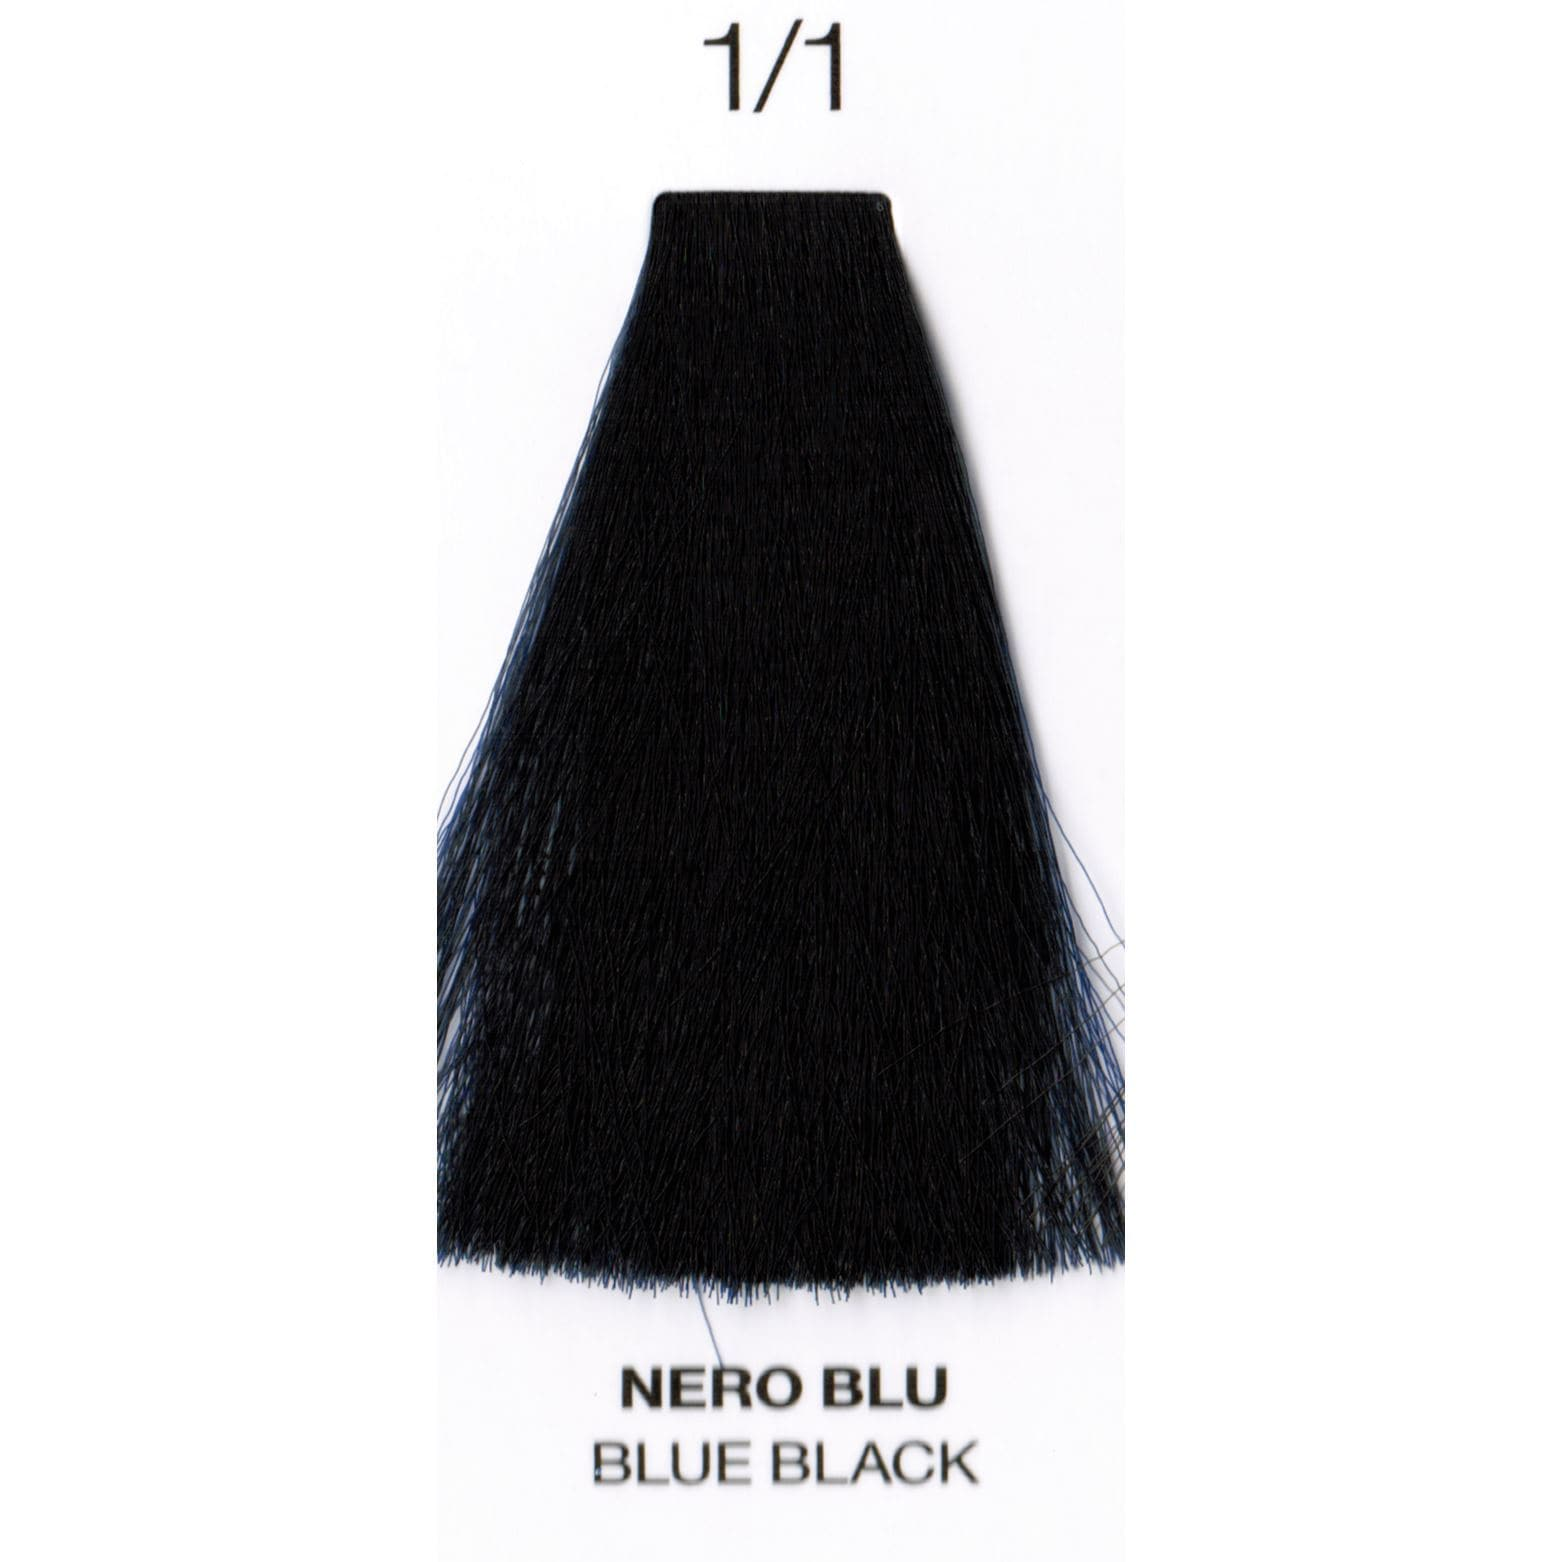 1/1 Blue Black | Purity | Ammonia-Free Permanent Hair Color - SH Salons